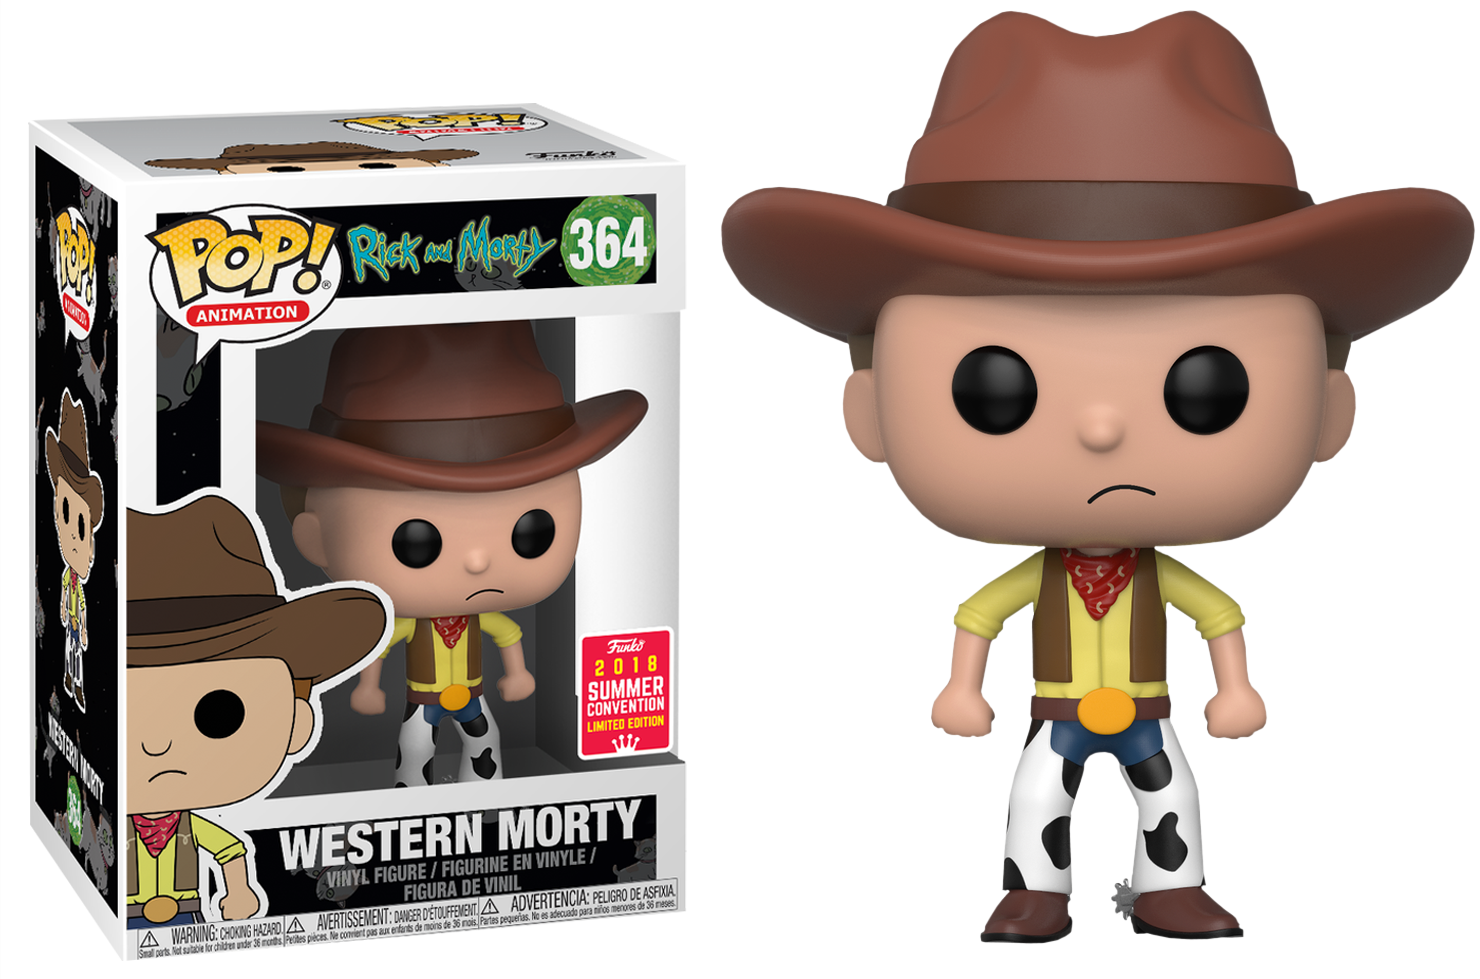 Rick & Morty POP! Animation Vinyl Figure Western Morty 2018 Summer Convention Exclusive 9 cm